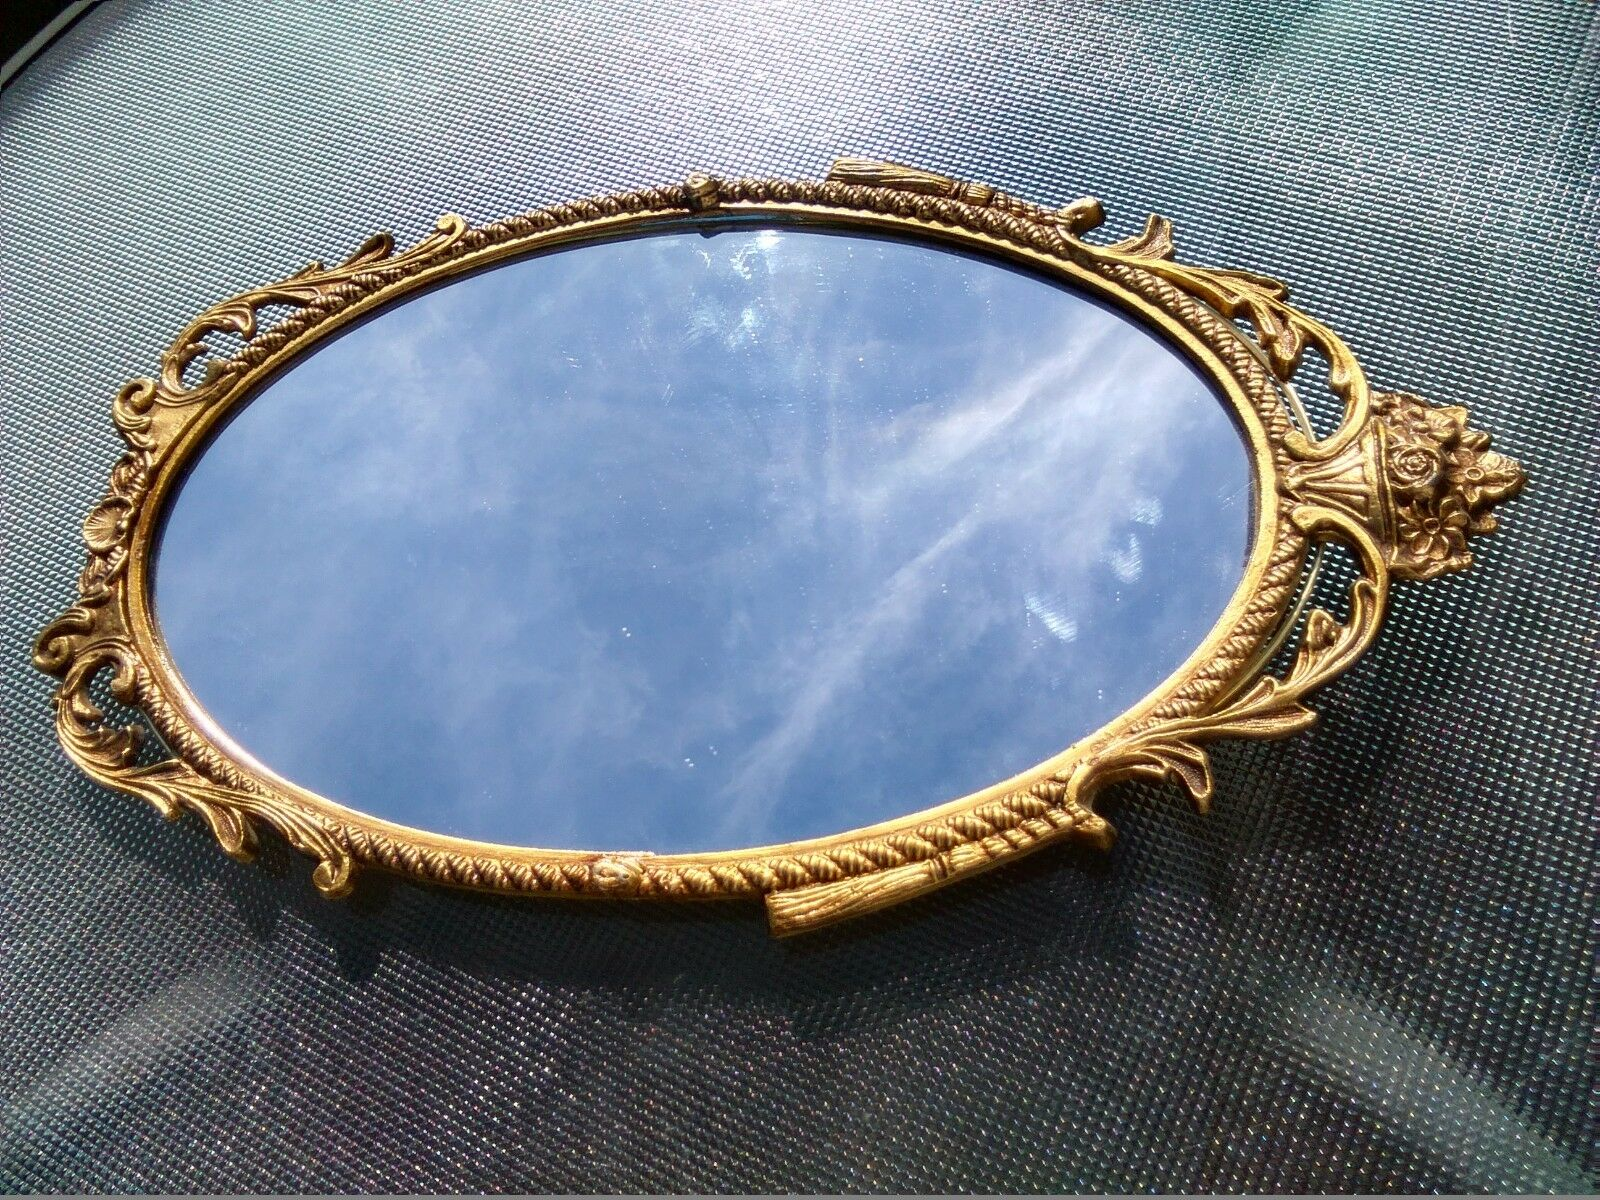 Gold Metal Wall Mirror: ORNATE OVAL WALL Mirror French Style Gold Gilt Metal Frame